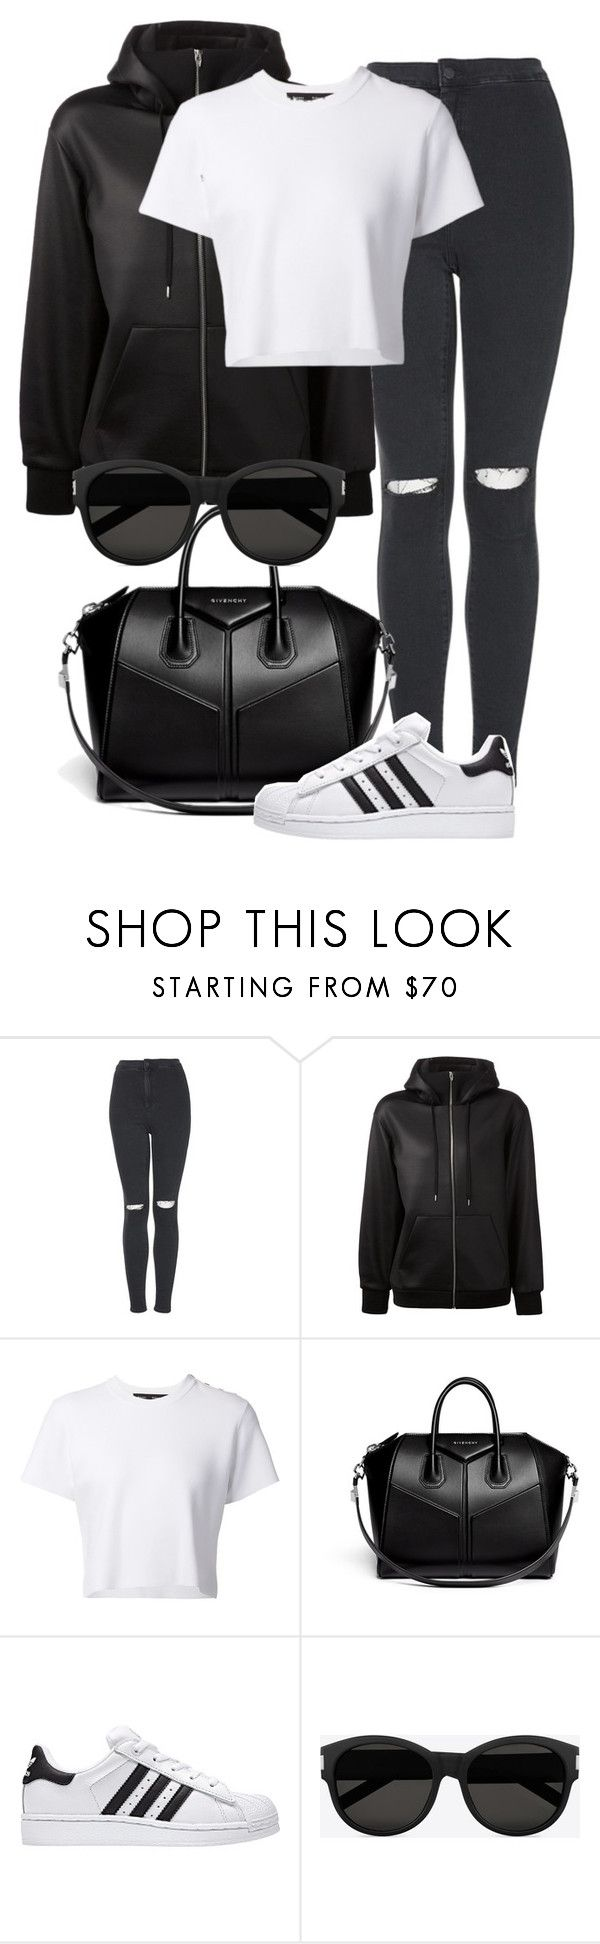 """""""Untitled #1930"""" by annielizjung ❤ liked on Polyvore featuring Topshop, T By Alexander Wang, Proenza Schouler, Givenchy and Yves Saint Laurent"""